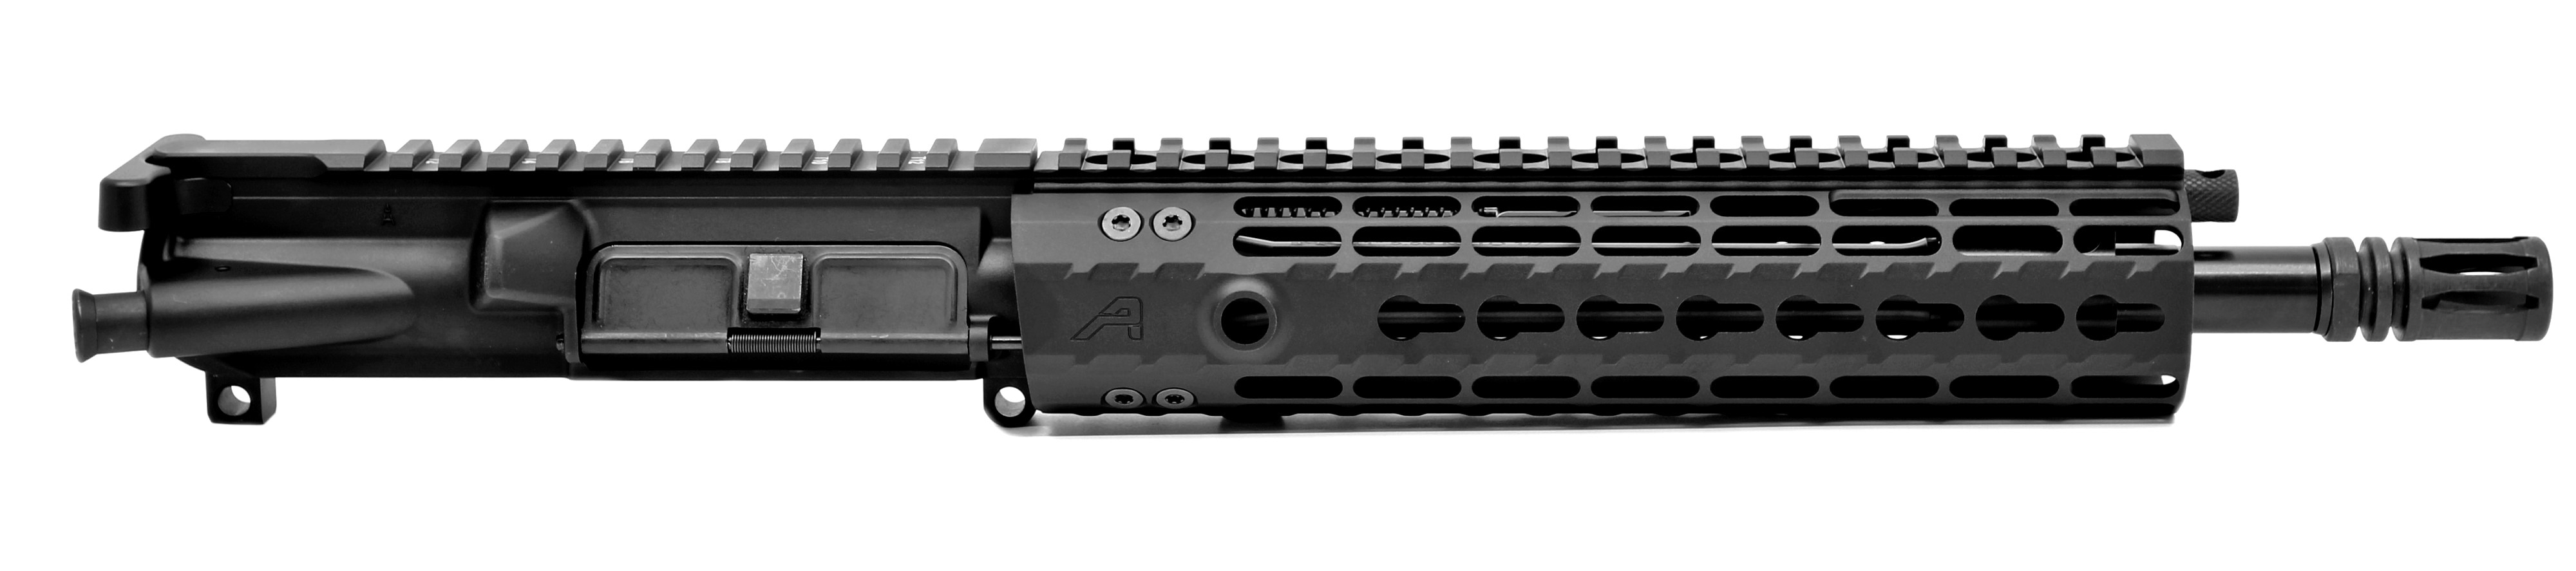 5.56 Low profile Regulated Upper